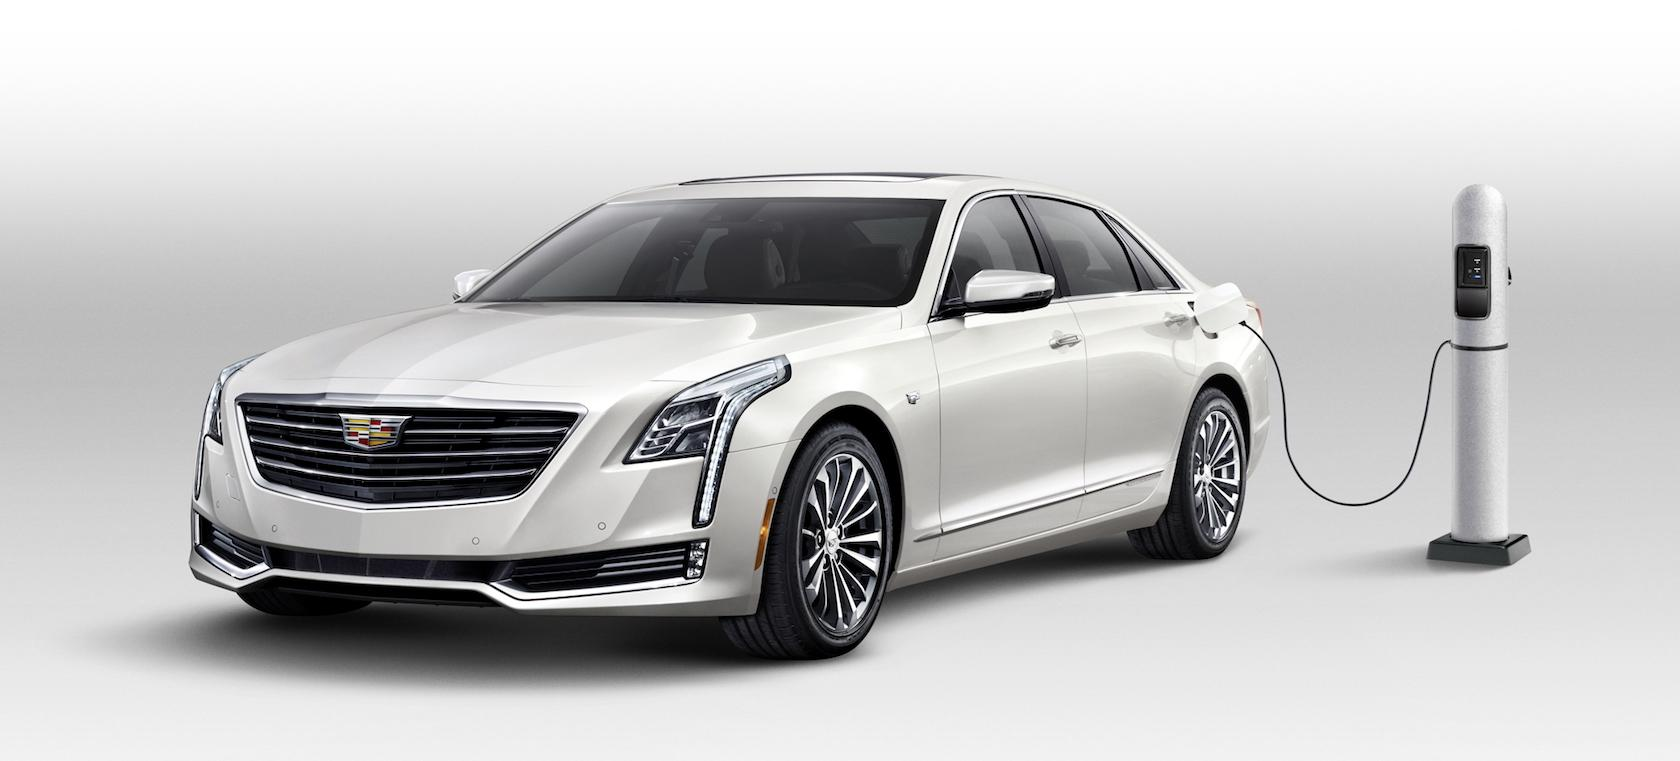 What S Unclear At This Point Is Exactly The First Cadillac Ev Will Be Given Electric Platform Flexibility That Could A Sedan Or Utility